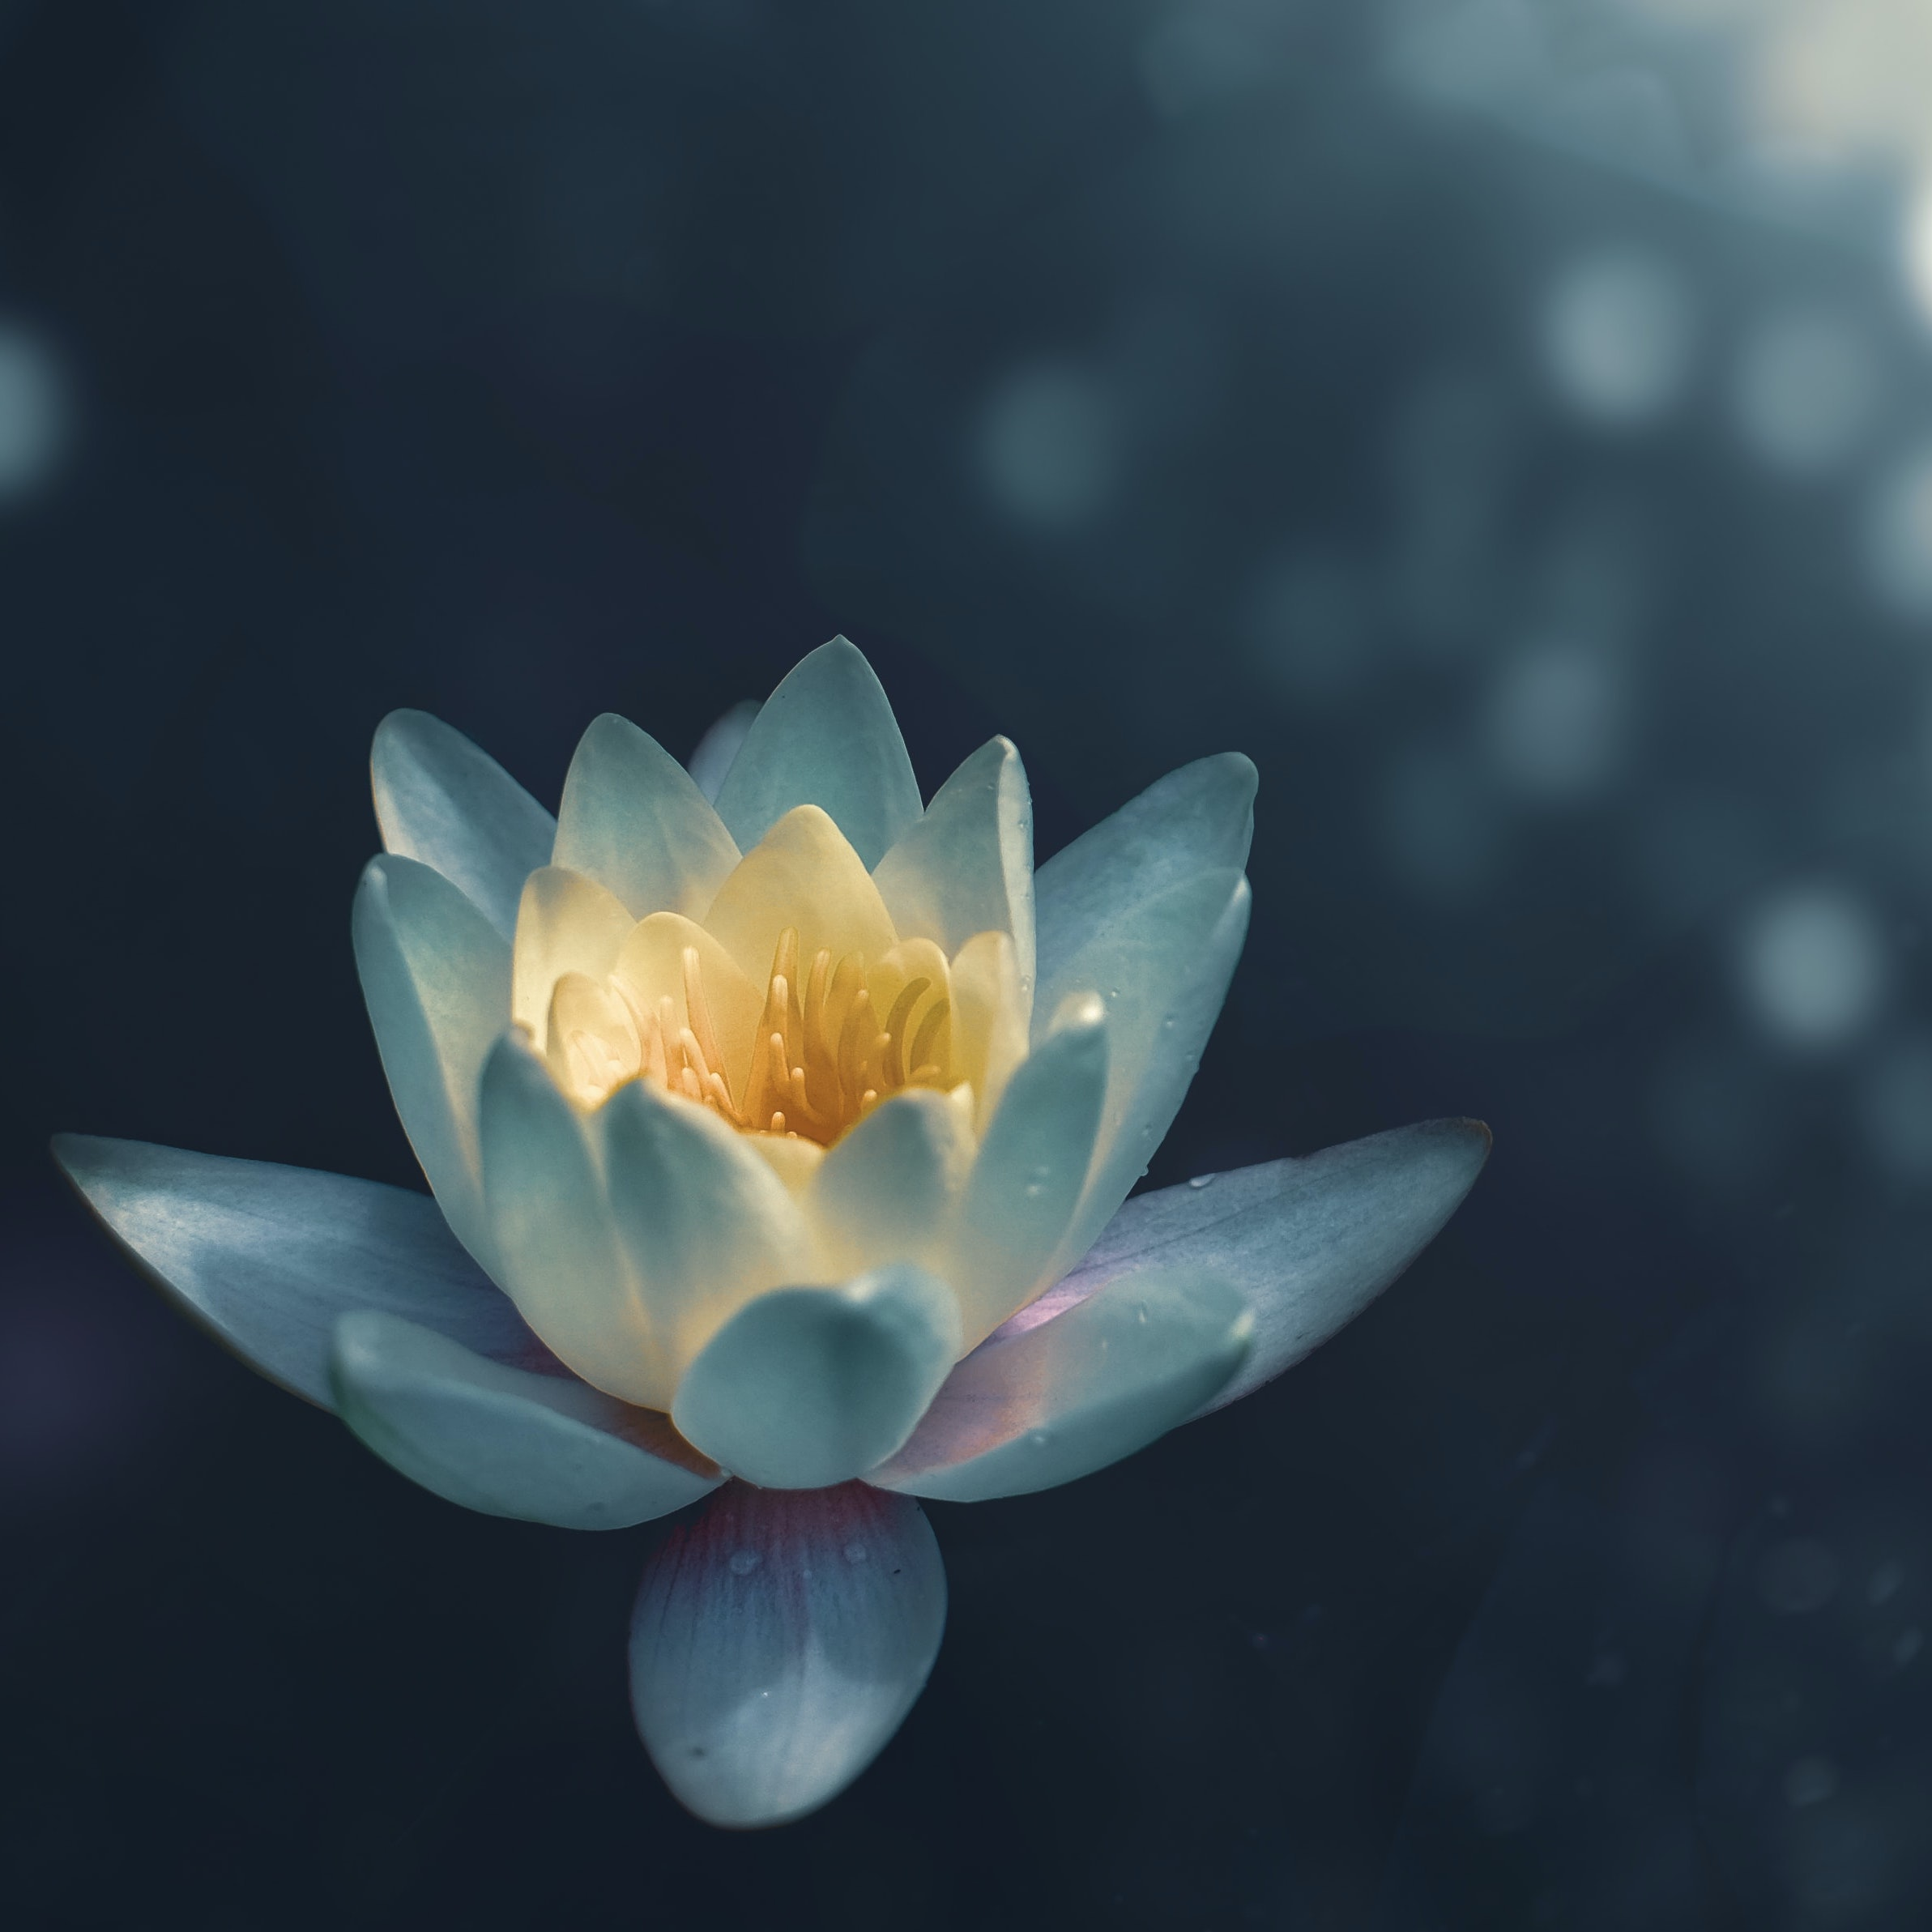 lotus flower sitting peacefully on a lake with sun glistening off of the water